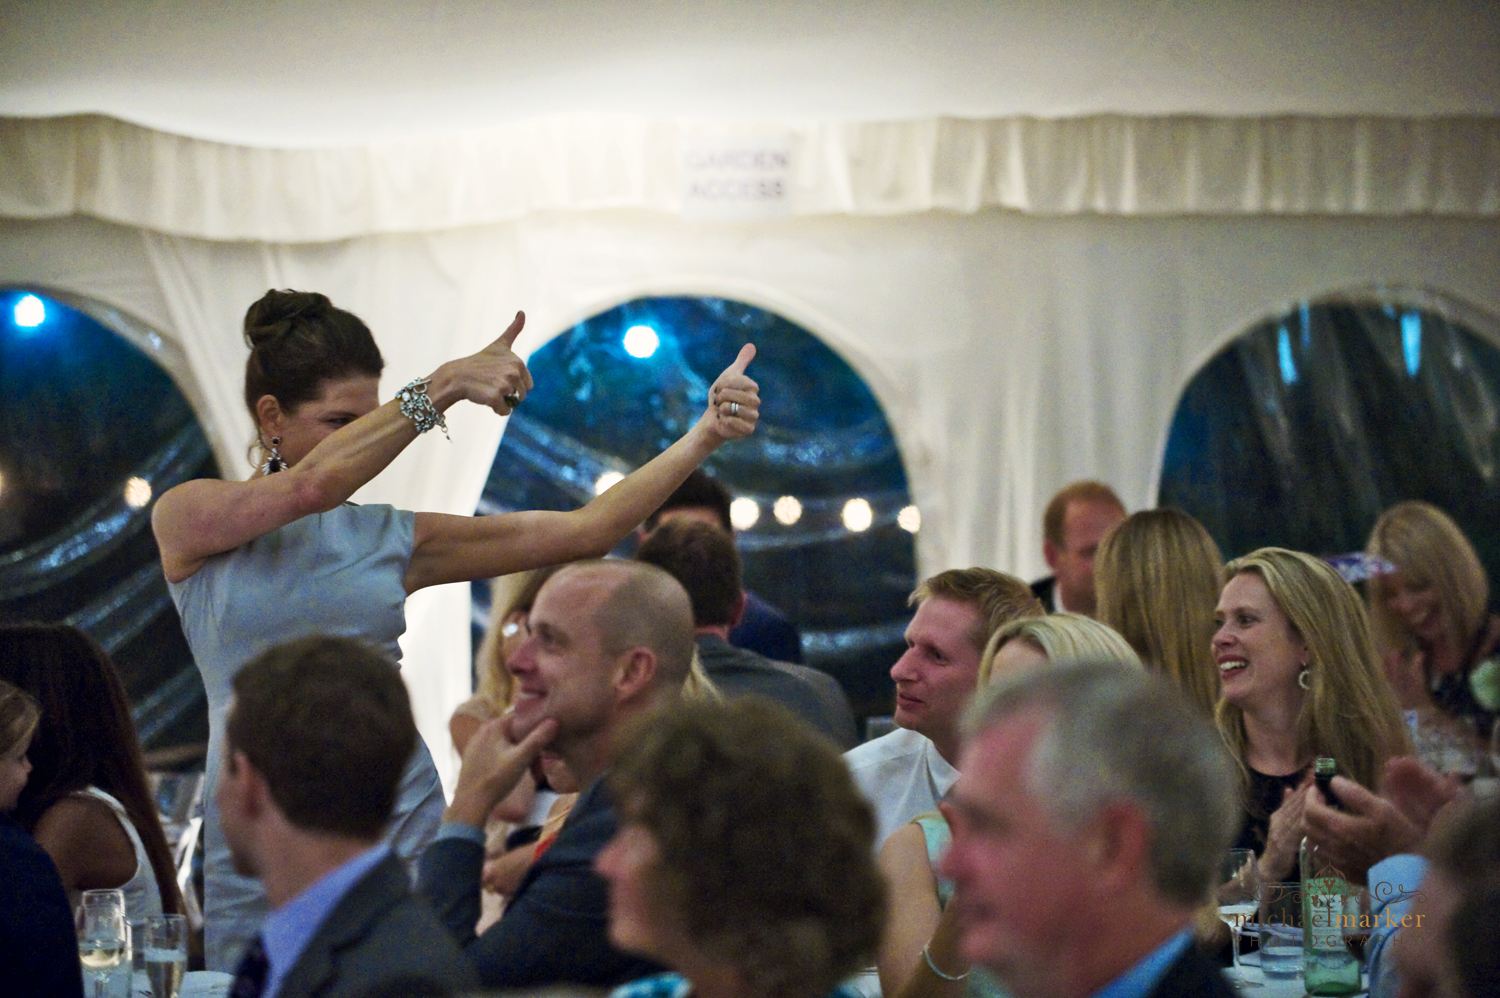 Shilstone-Devon-wedding-speeches